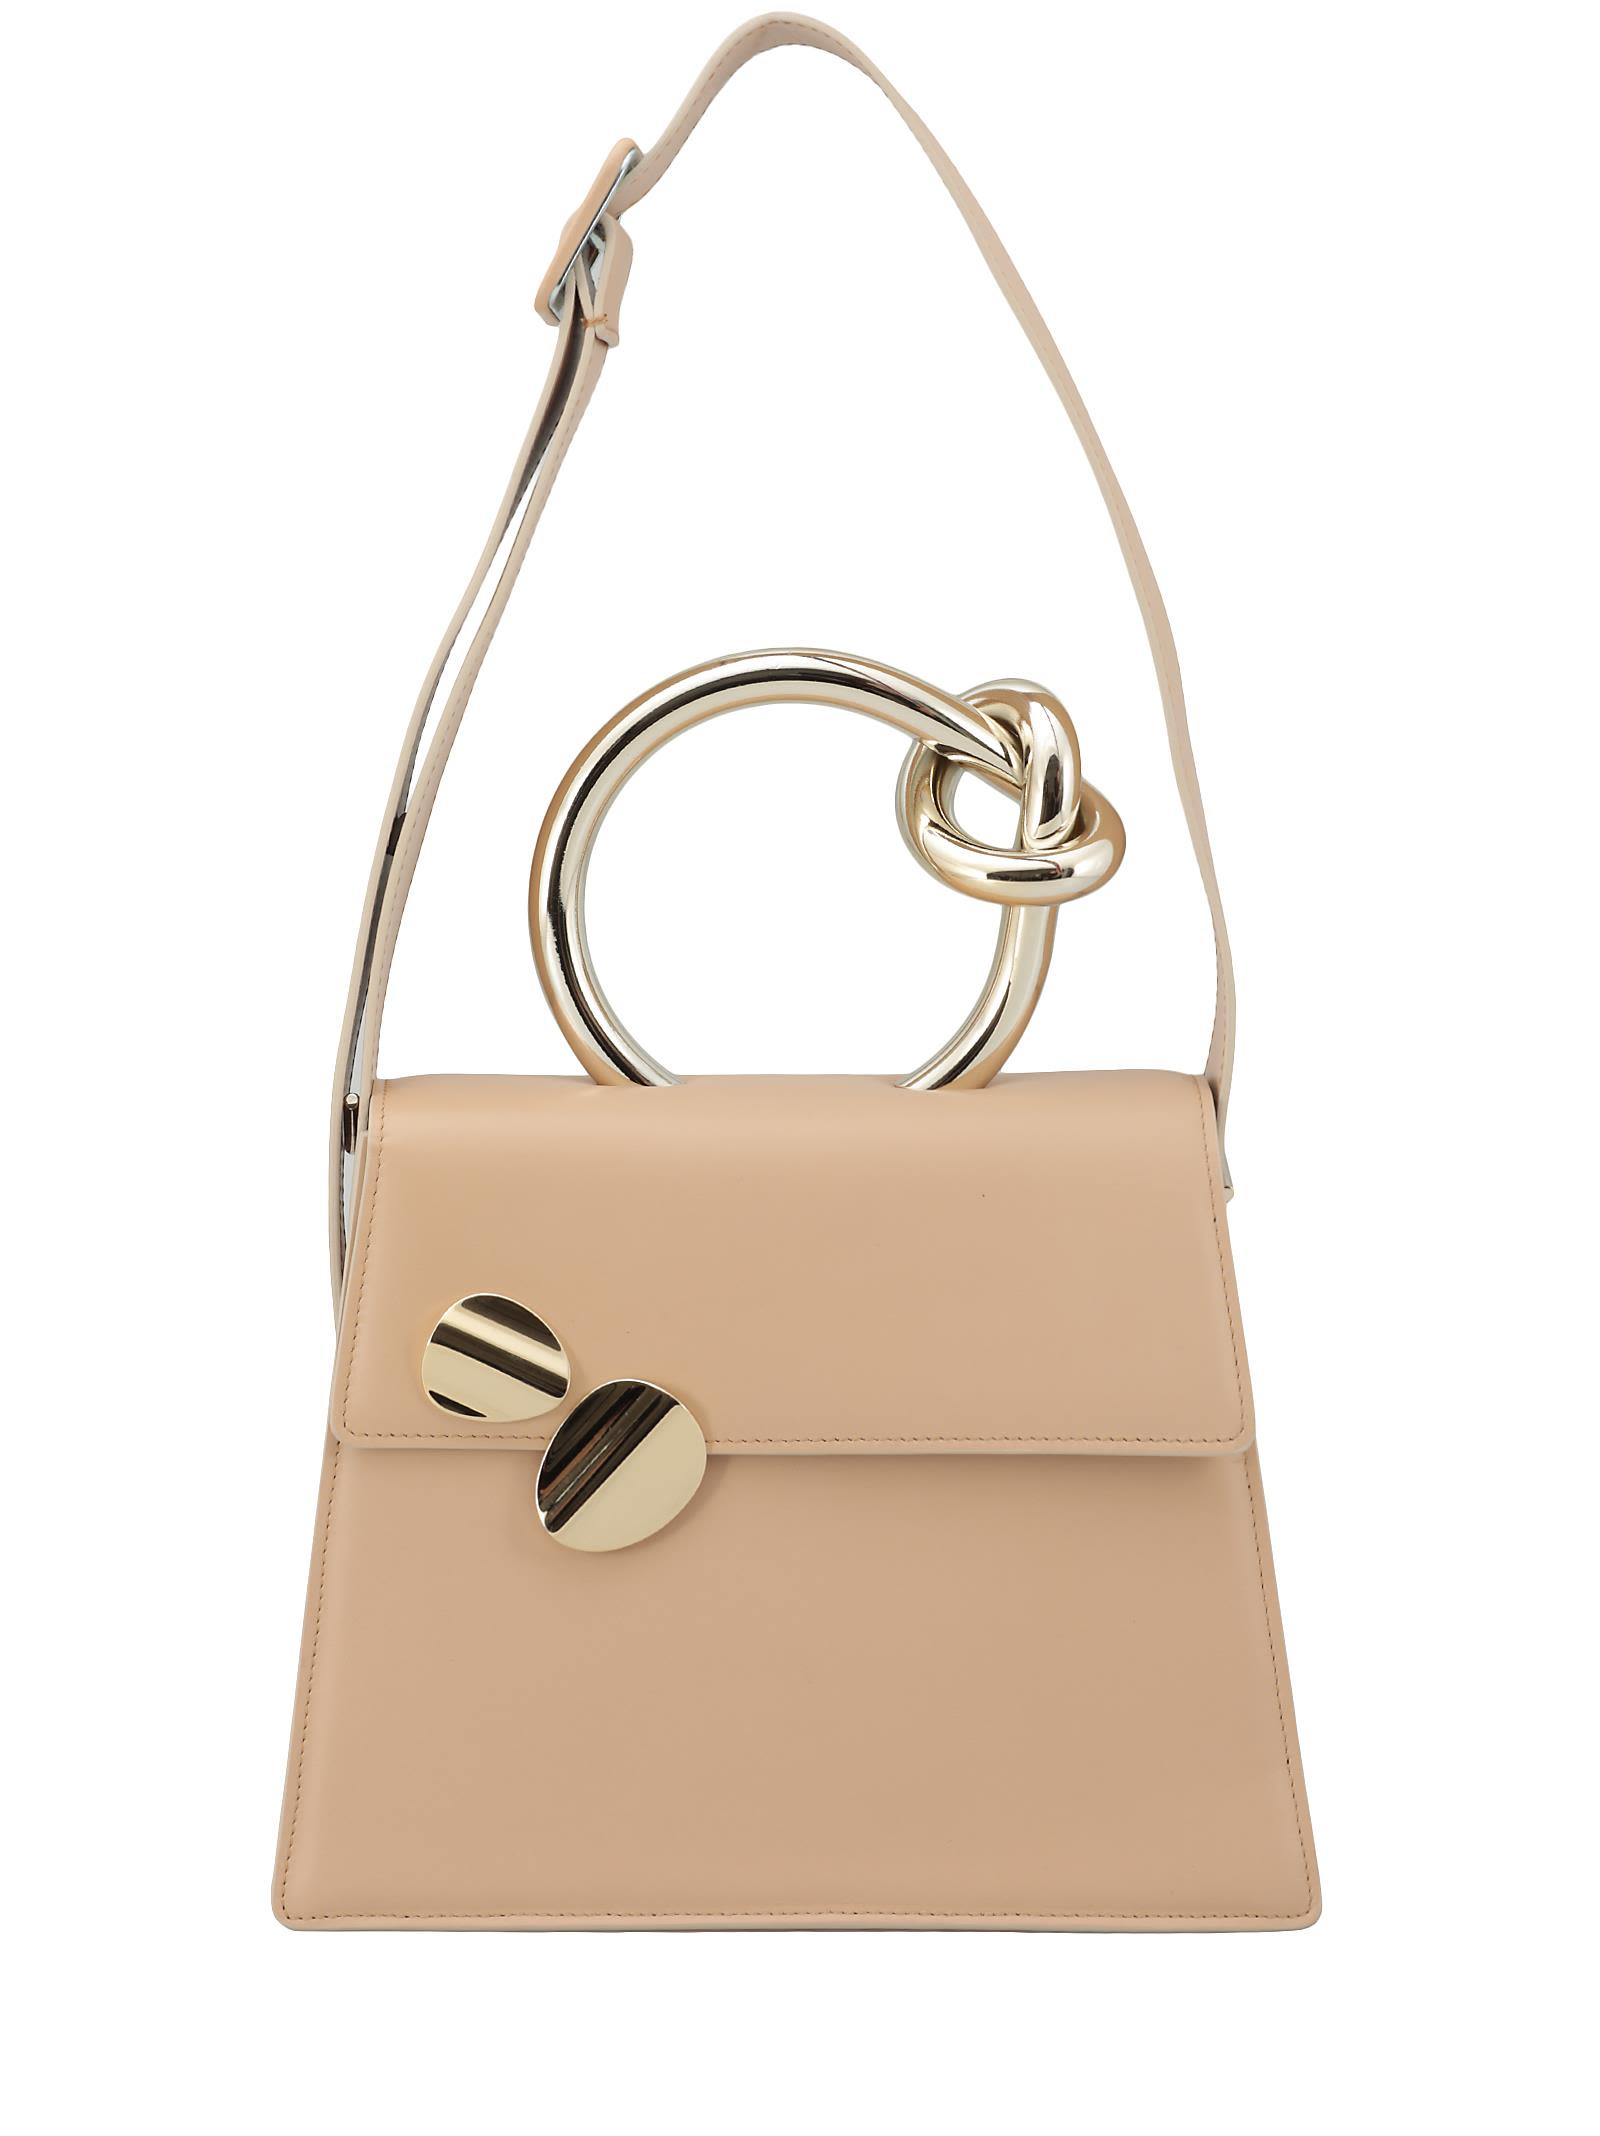 Benedetta Bruzziches BRIGITTA BIG BAG